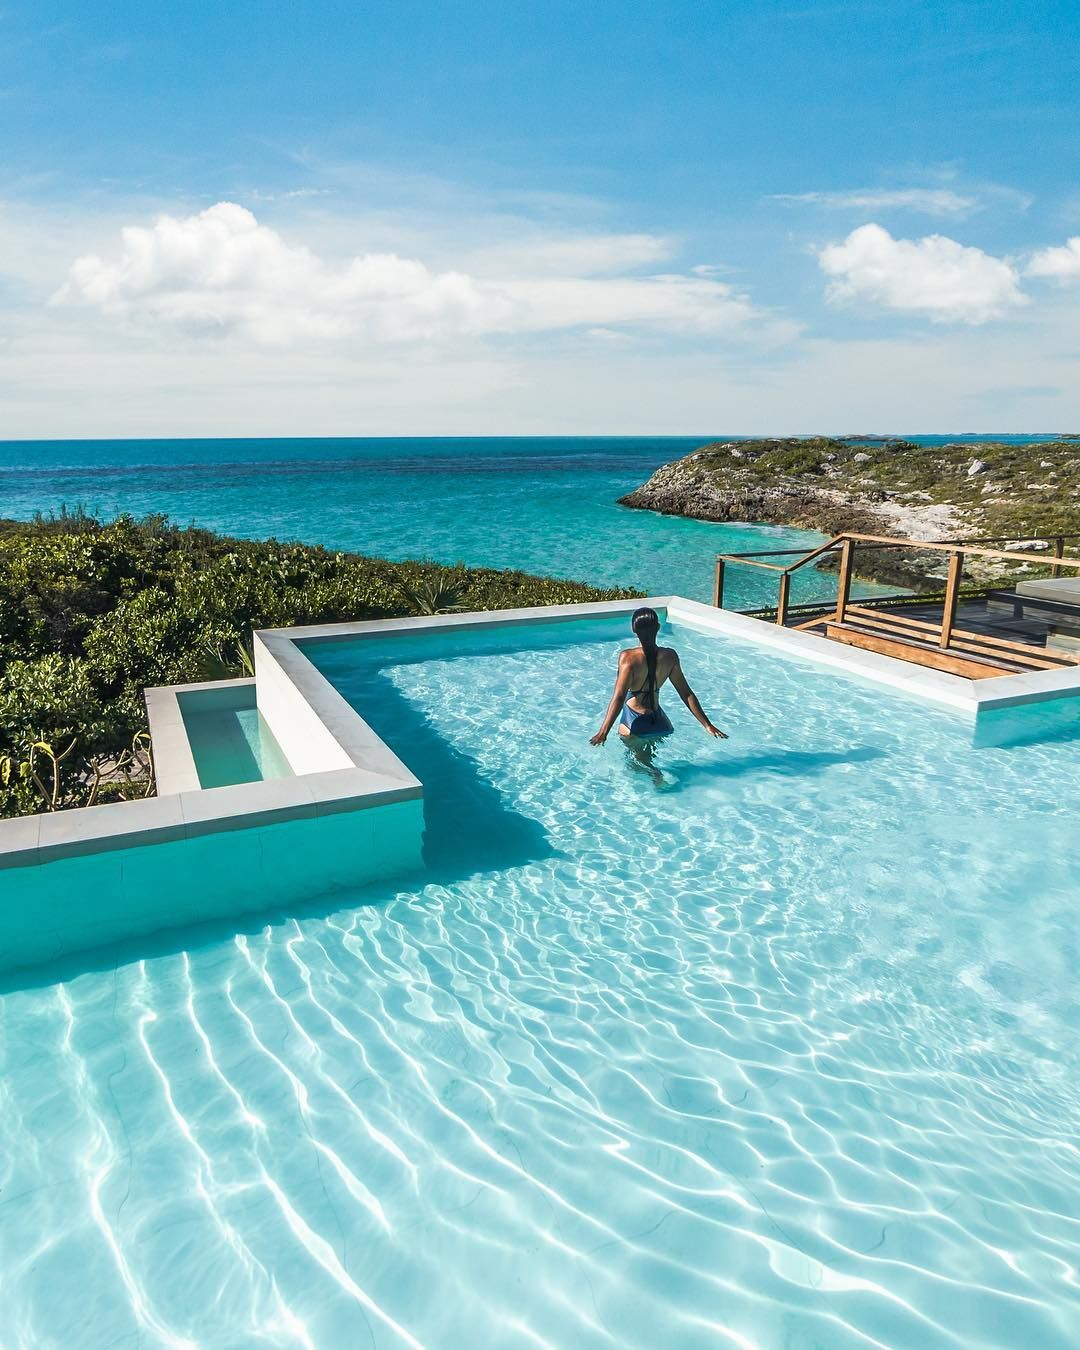 Turtle Tail Estate On Instagram Endless Views Of Azure Waters Surrounded By Lush Vegetation Distant Places Never Felt So Much L Views Swimming Pools Estates